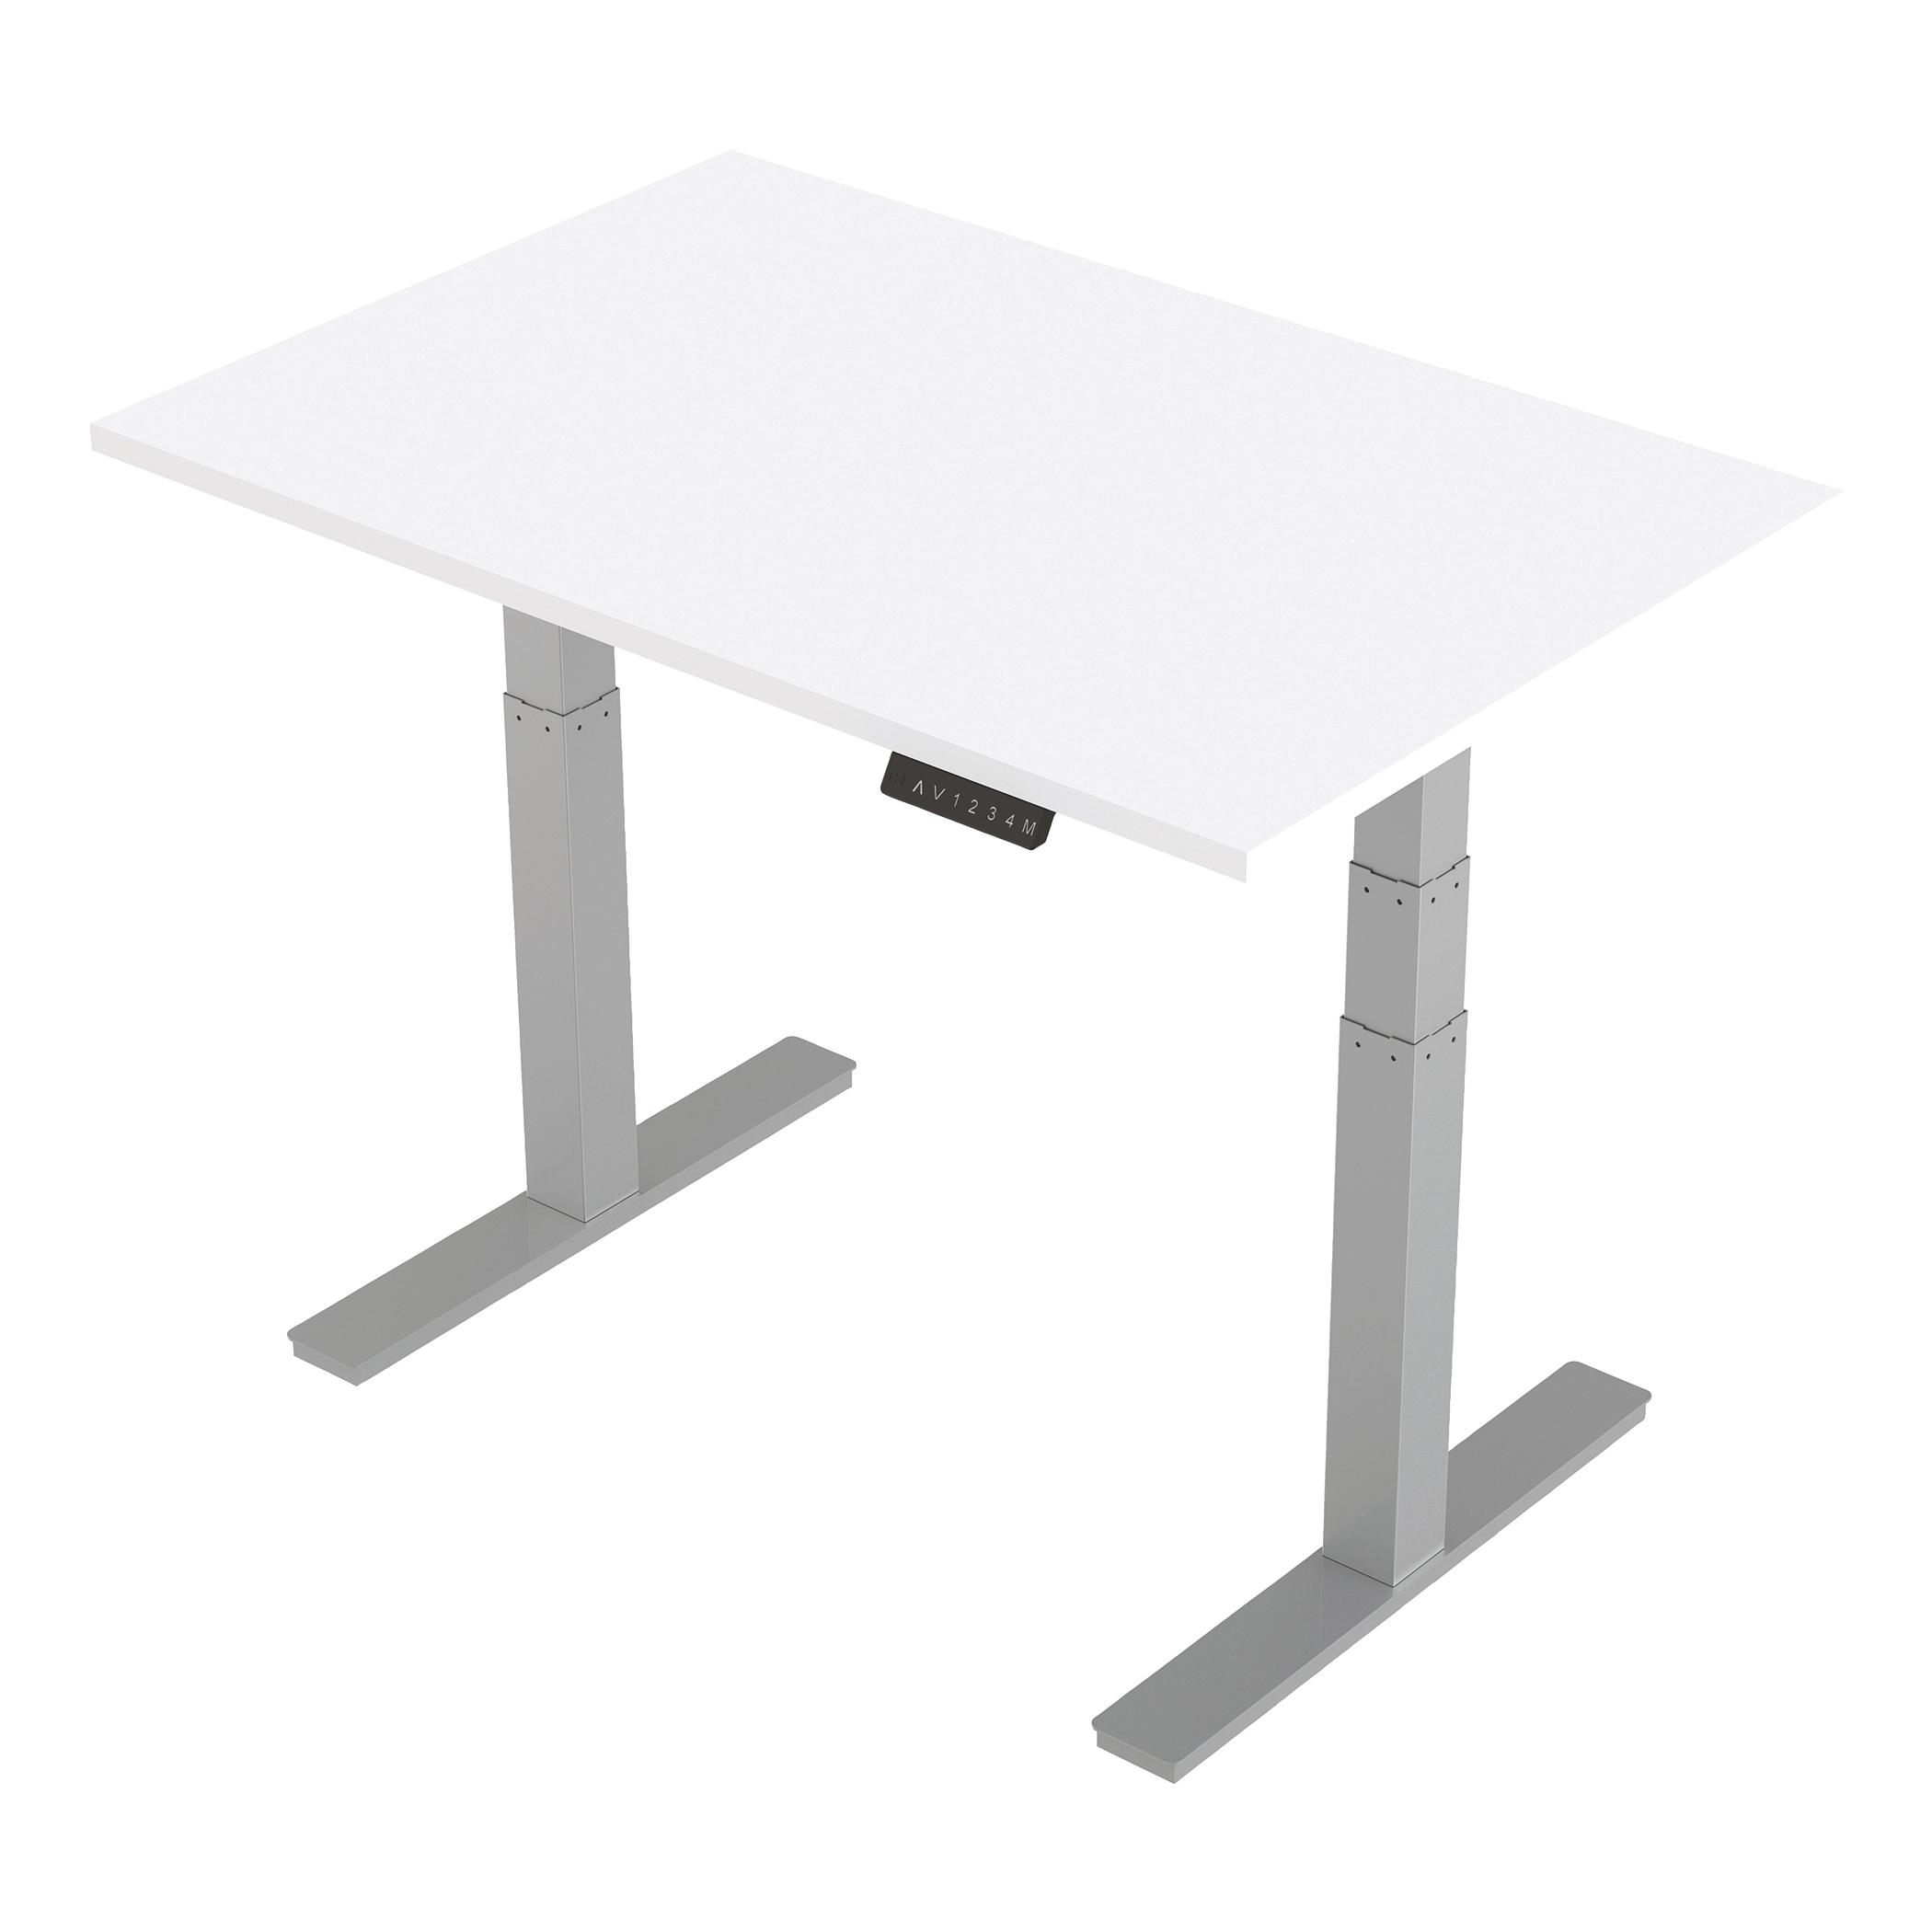 Trexus Sit-Stand Desk Height-adjustable Silver Leg Frame 1200/800mm White Ref HA01009